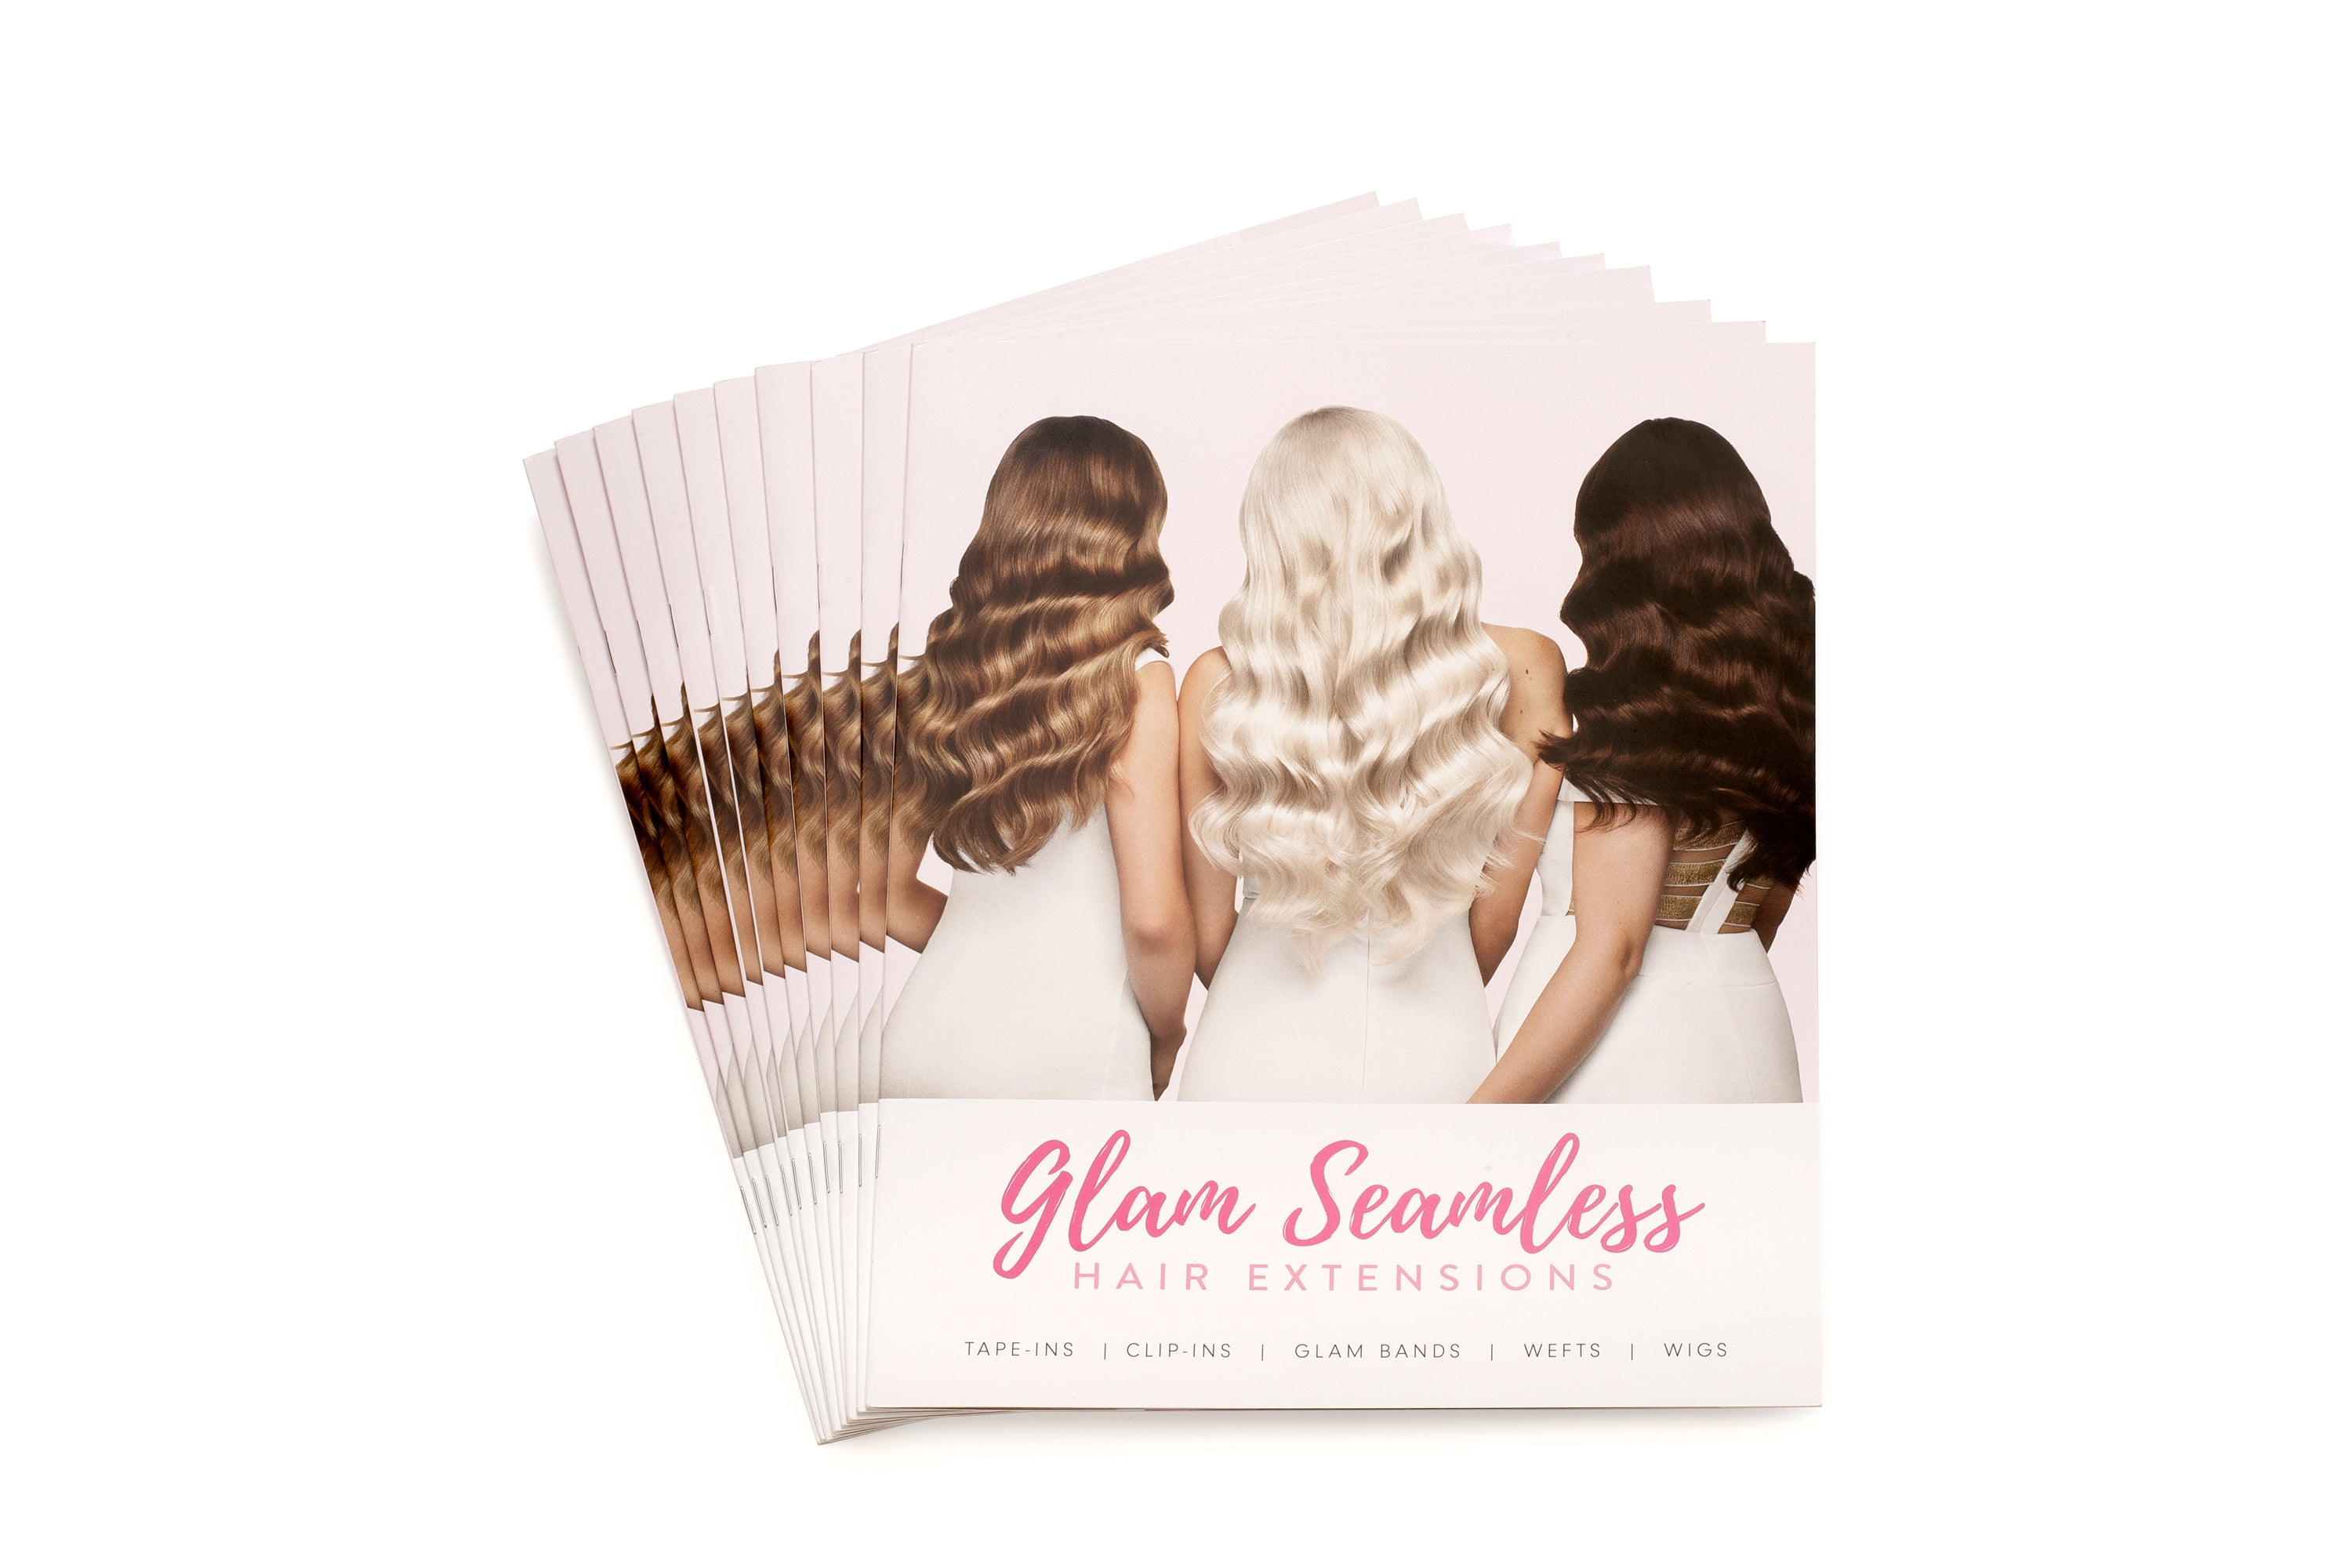 Glam Seamless Information Booklet